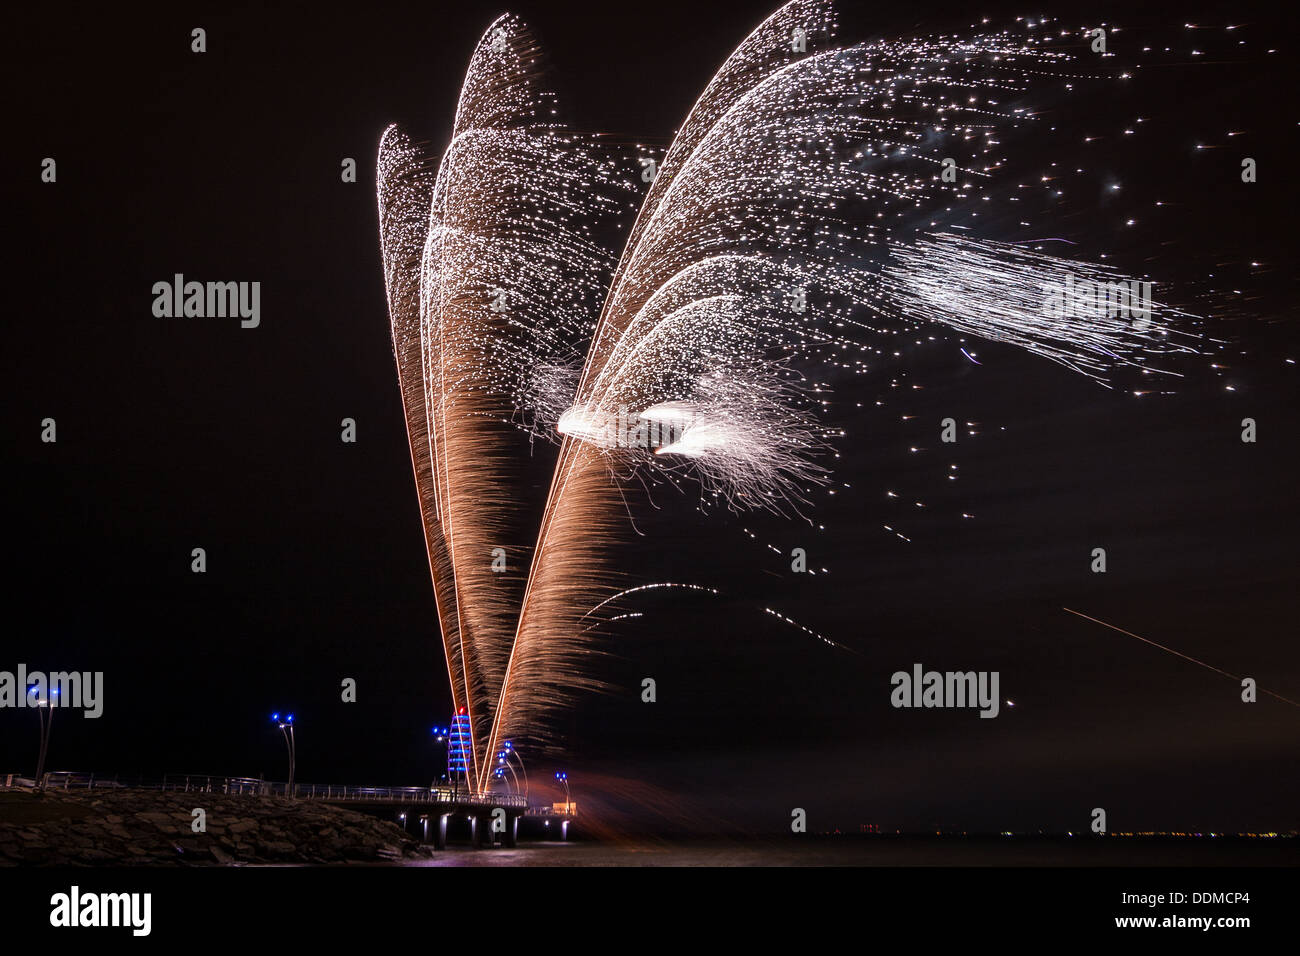 fire crackers or fire works that look like a fountain - Stock Image